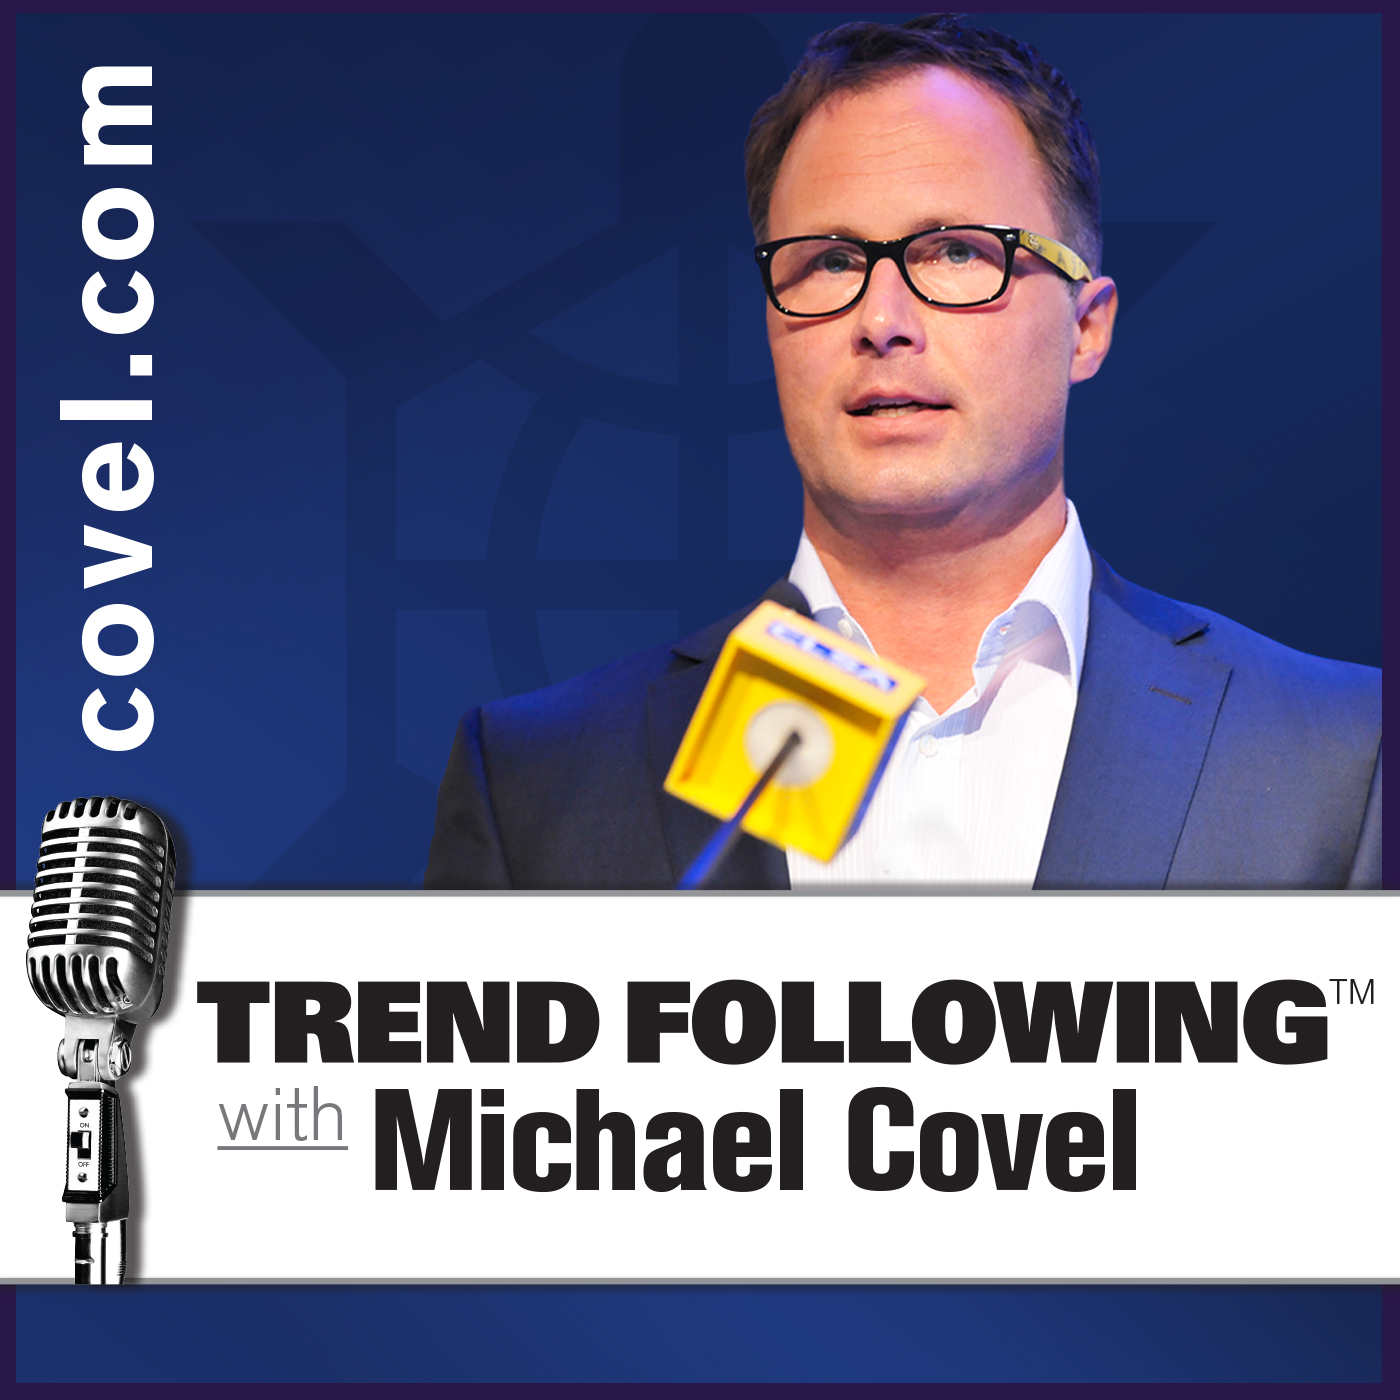 Ep. 503: John Miller Interview with Michael Covel on Trend Following Radio